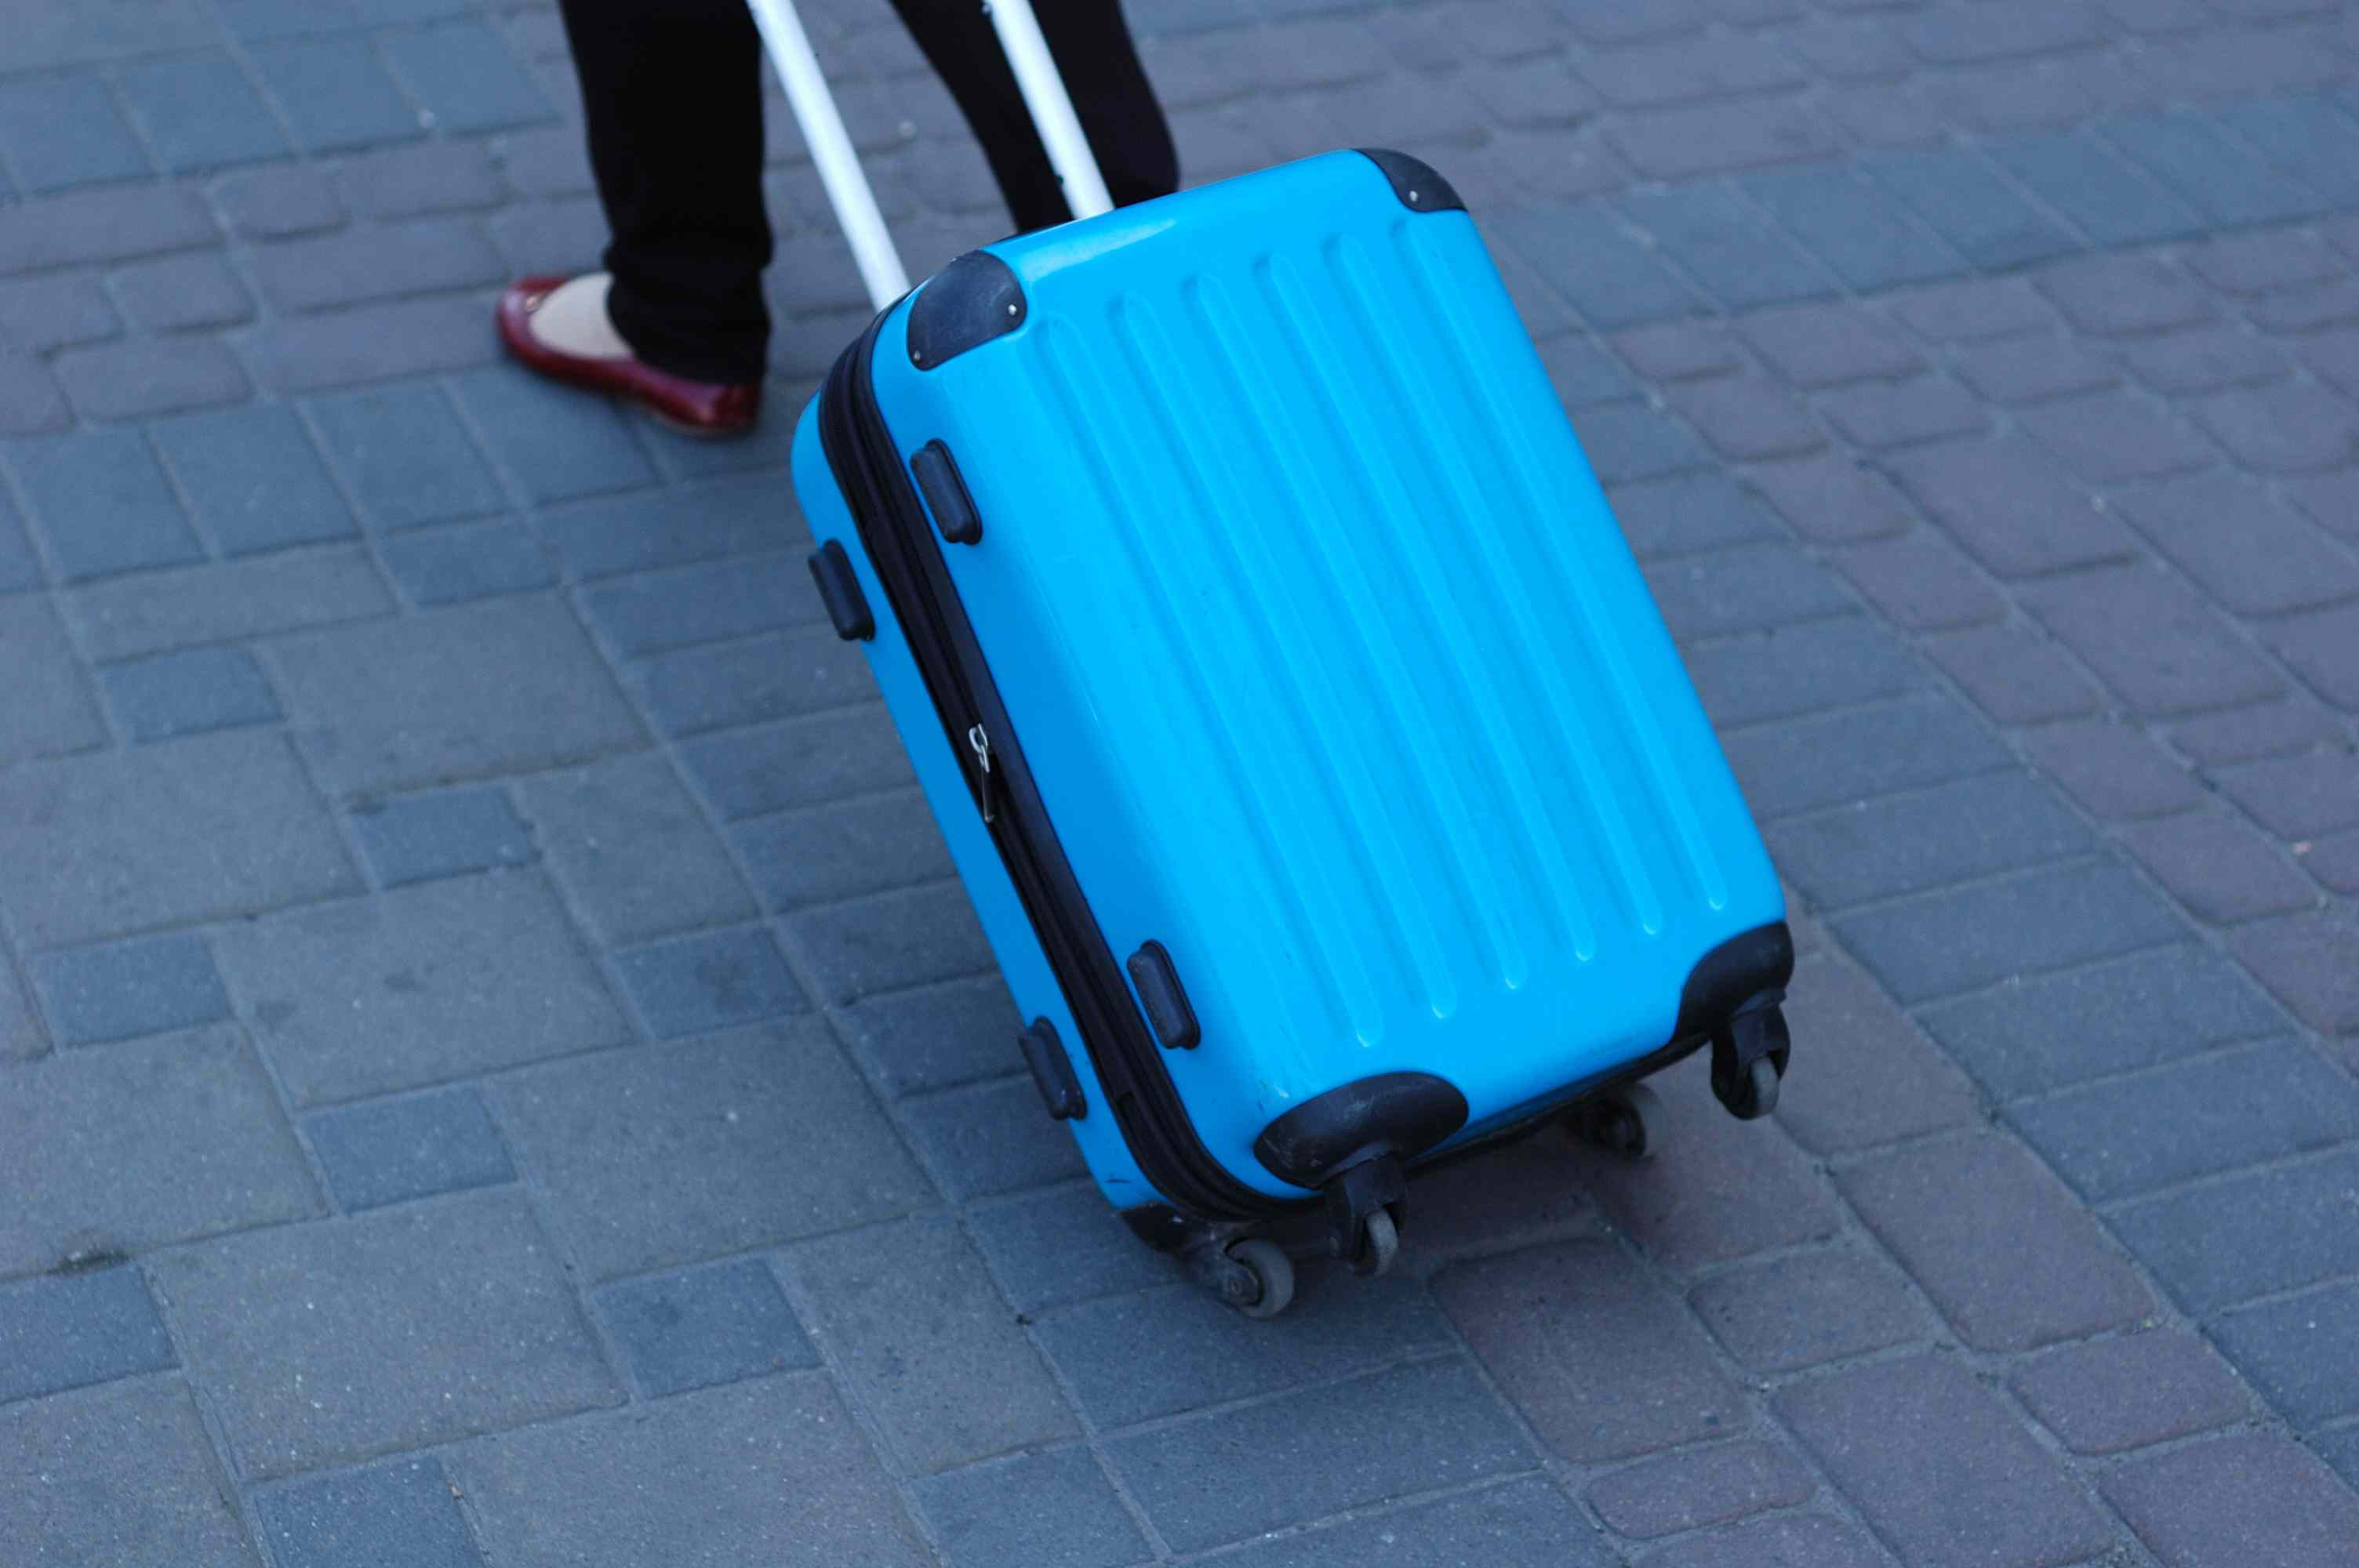 A blue rolling backpack is taken along the path.